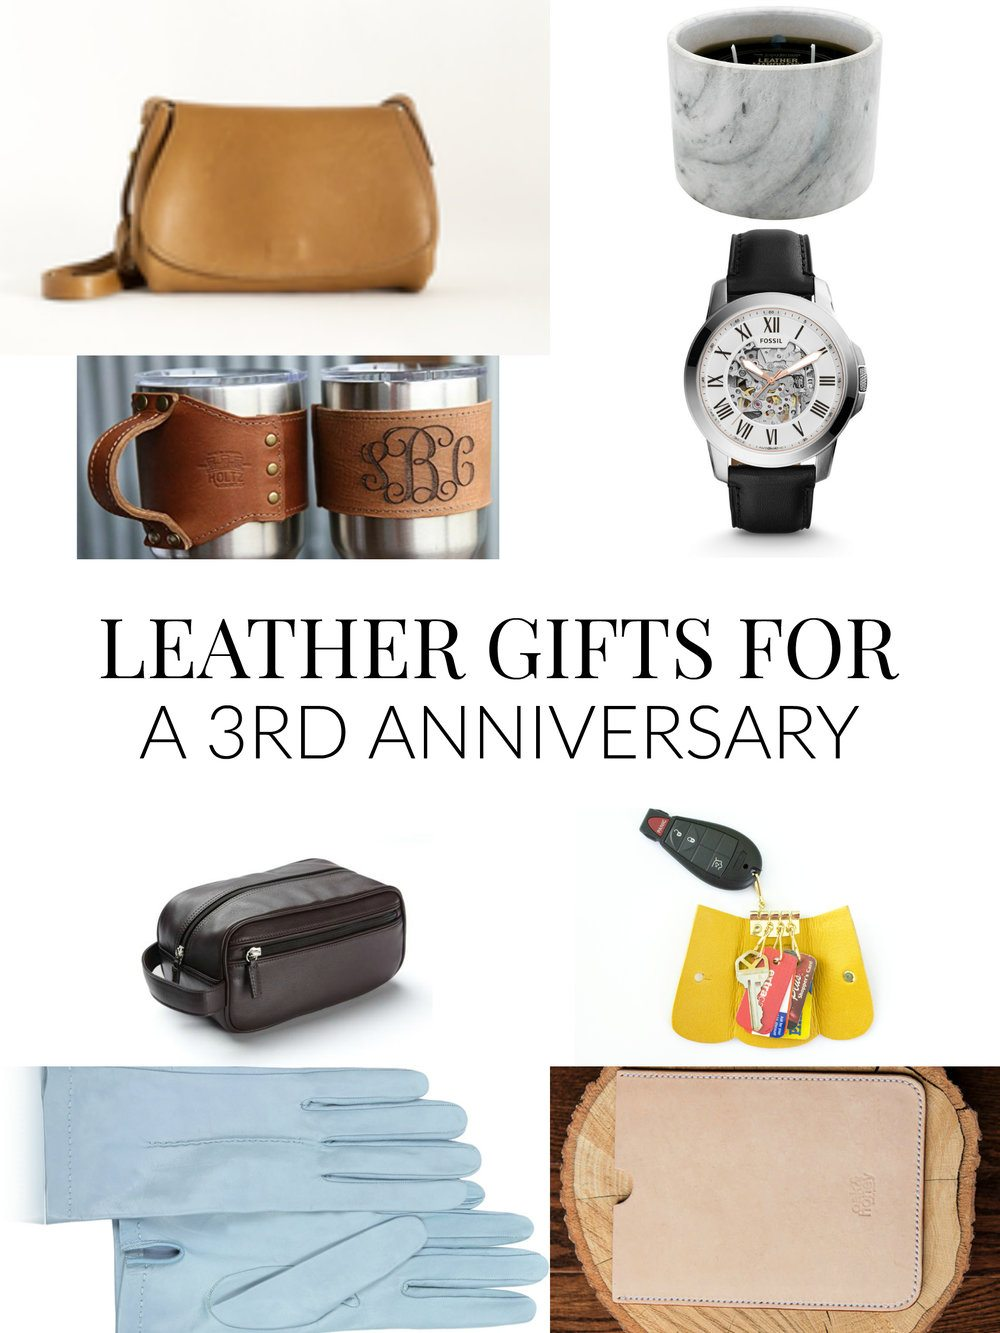 Leather Gifts For A 3rd Anniversary Elle Talk